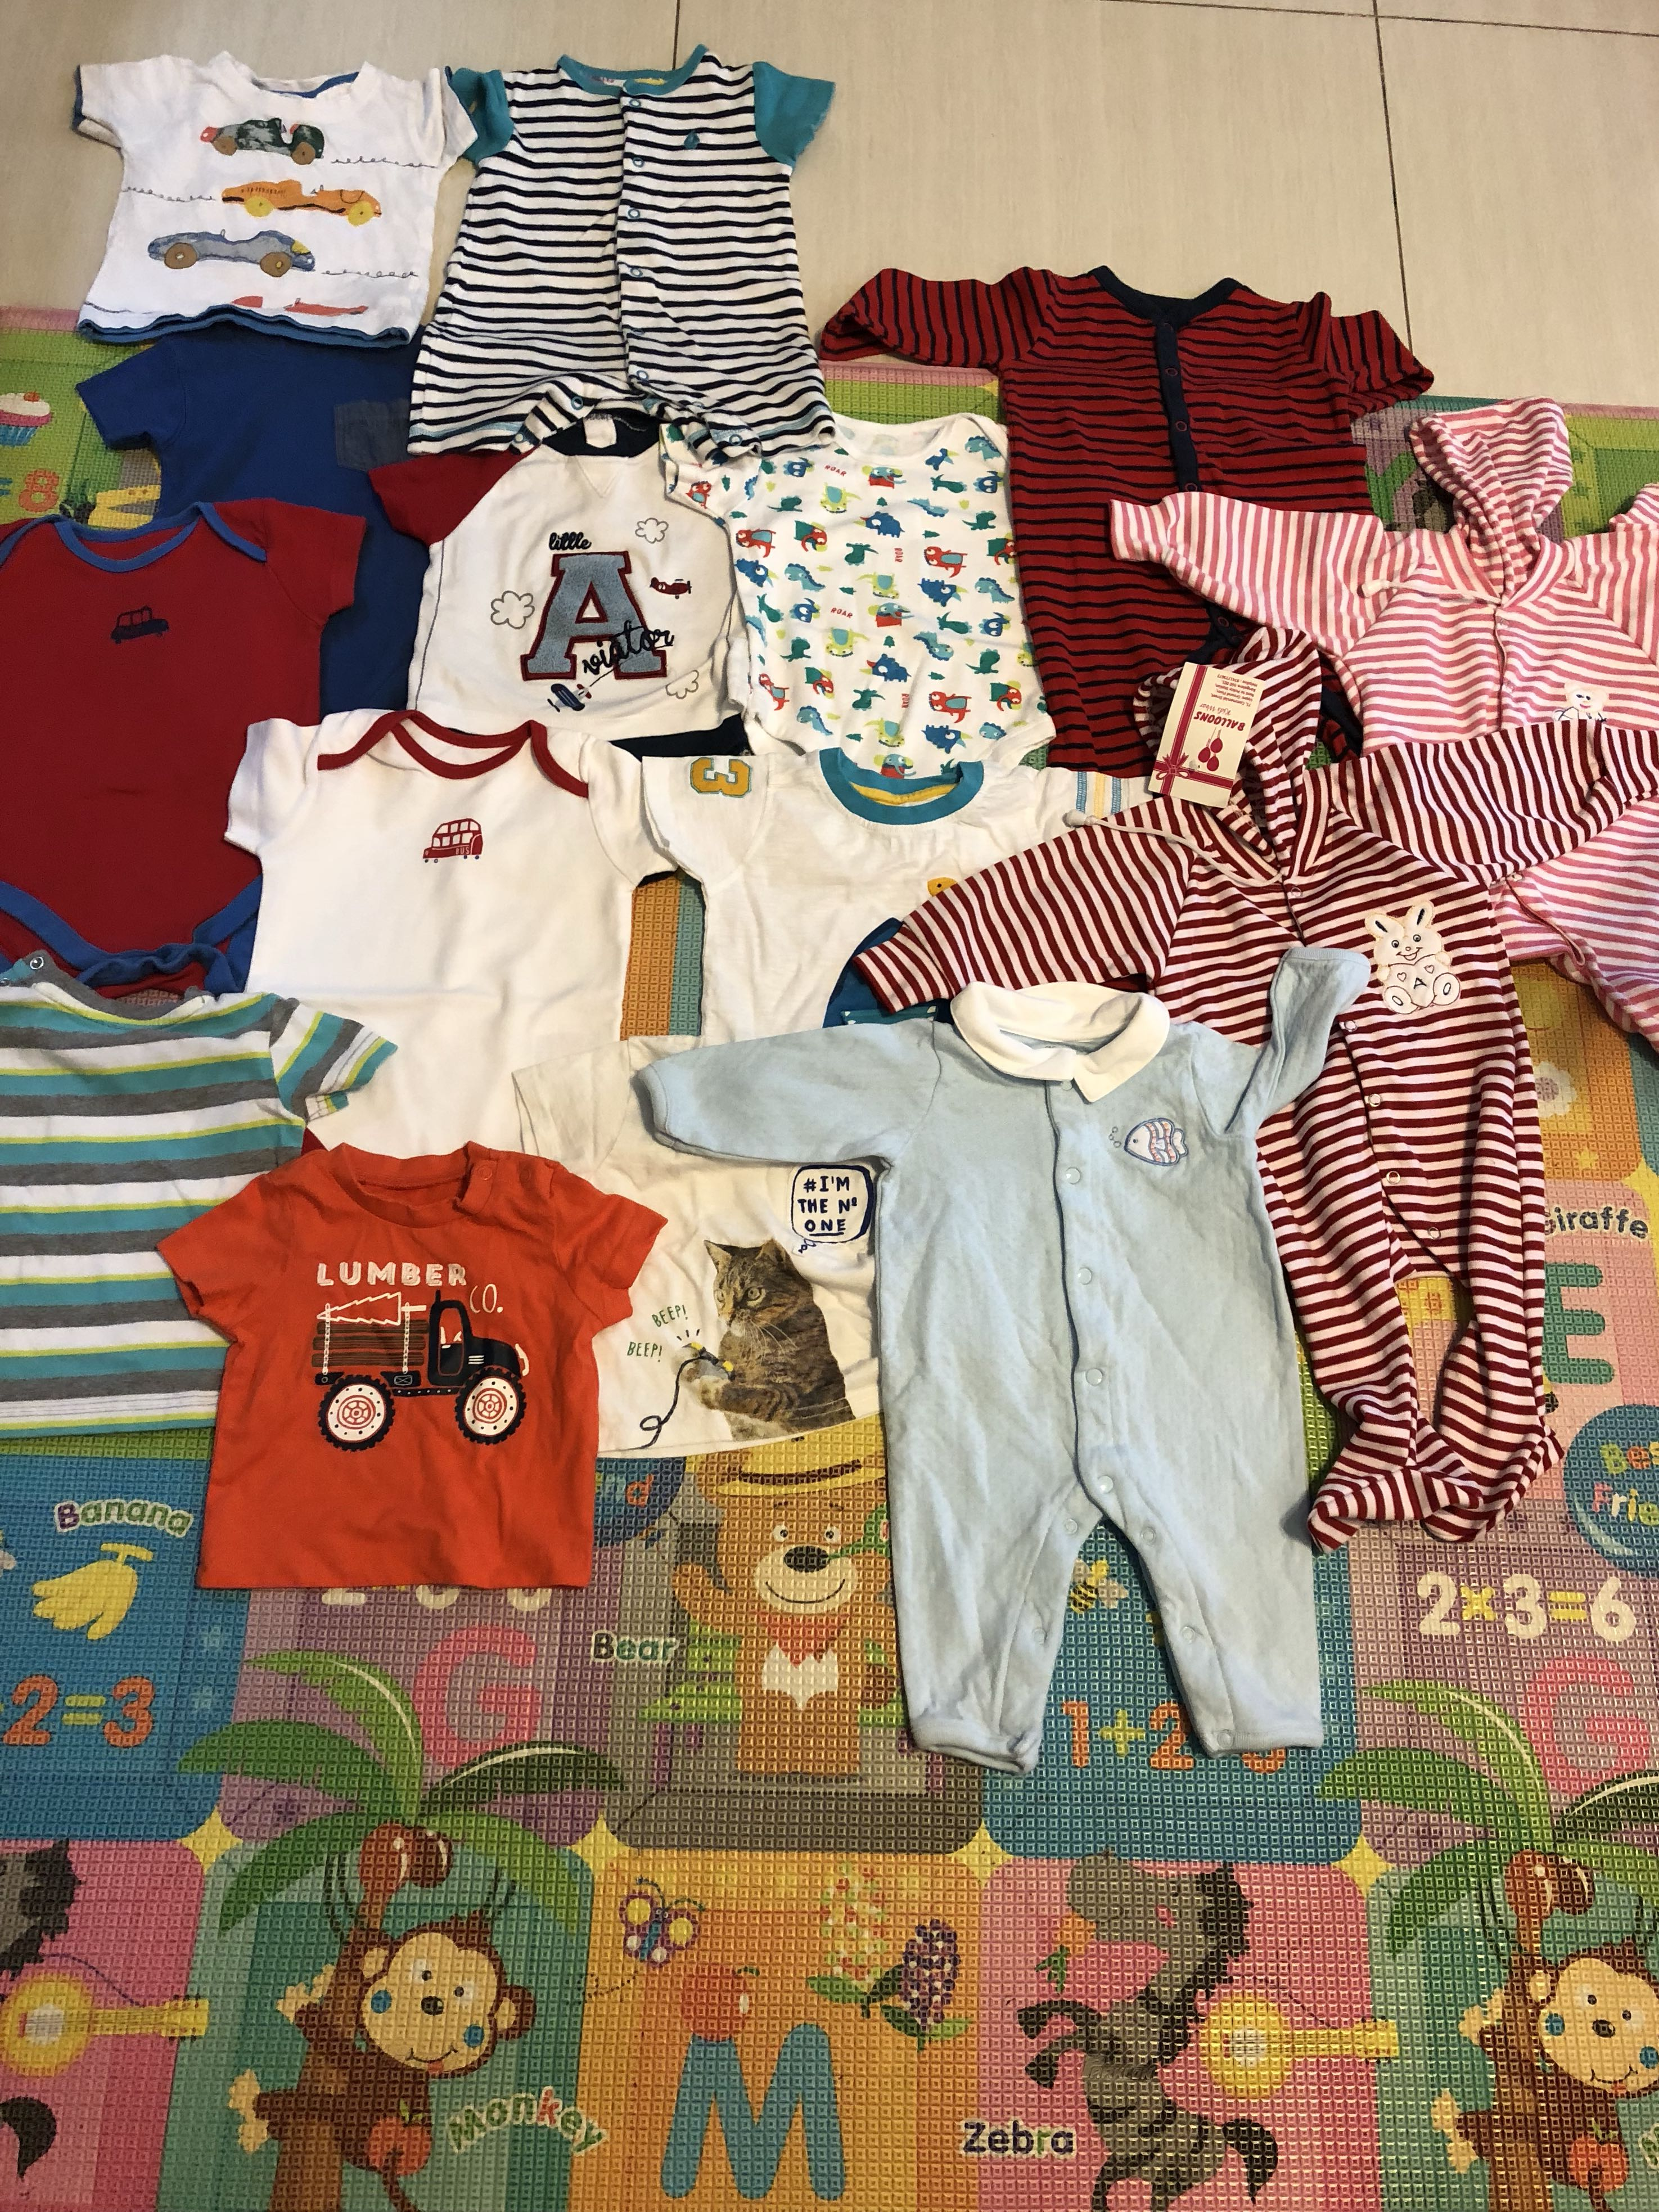 f640ce37 Baby Clothes Bundle mother care , H&M , Zara , other brand, Babies & Kids,  Babies Apparel on Carousell